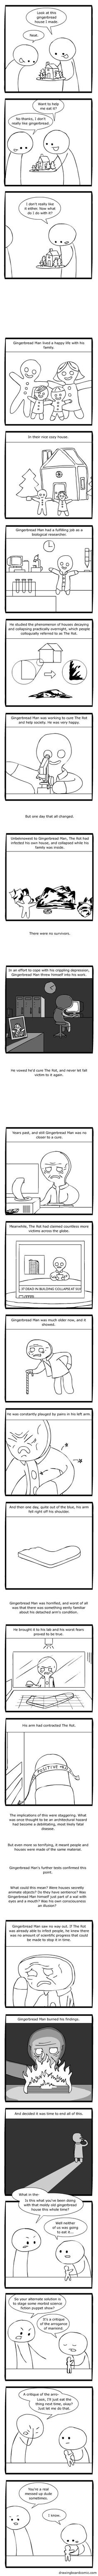 Gingerbread Man: The Movie - Album on Imgur